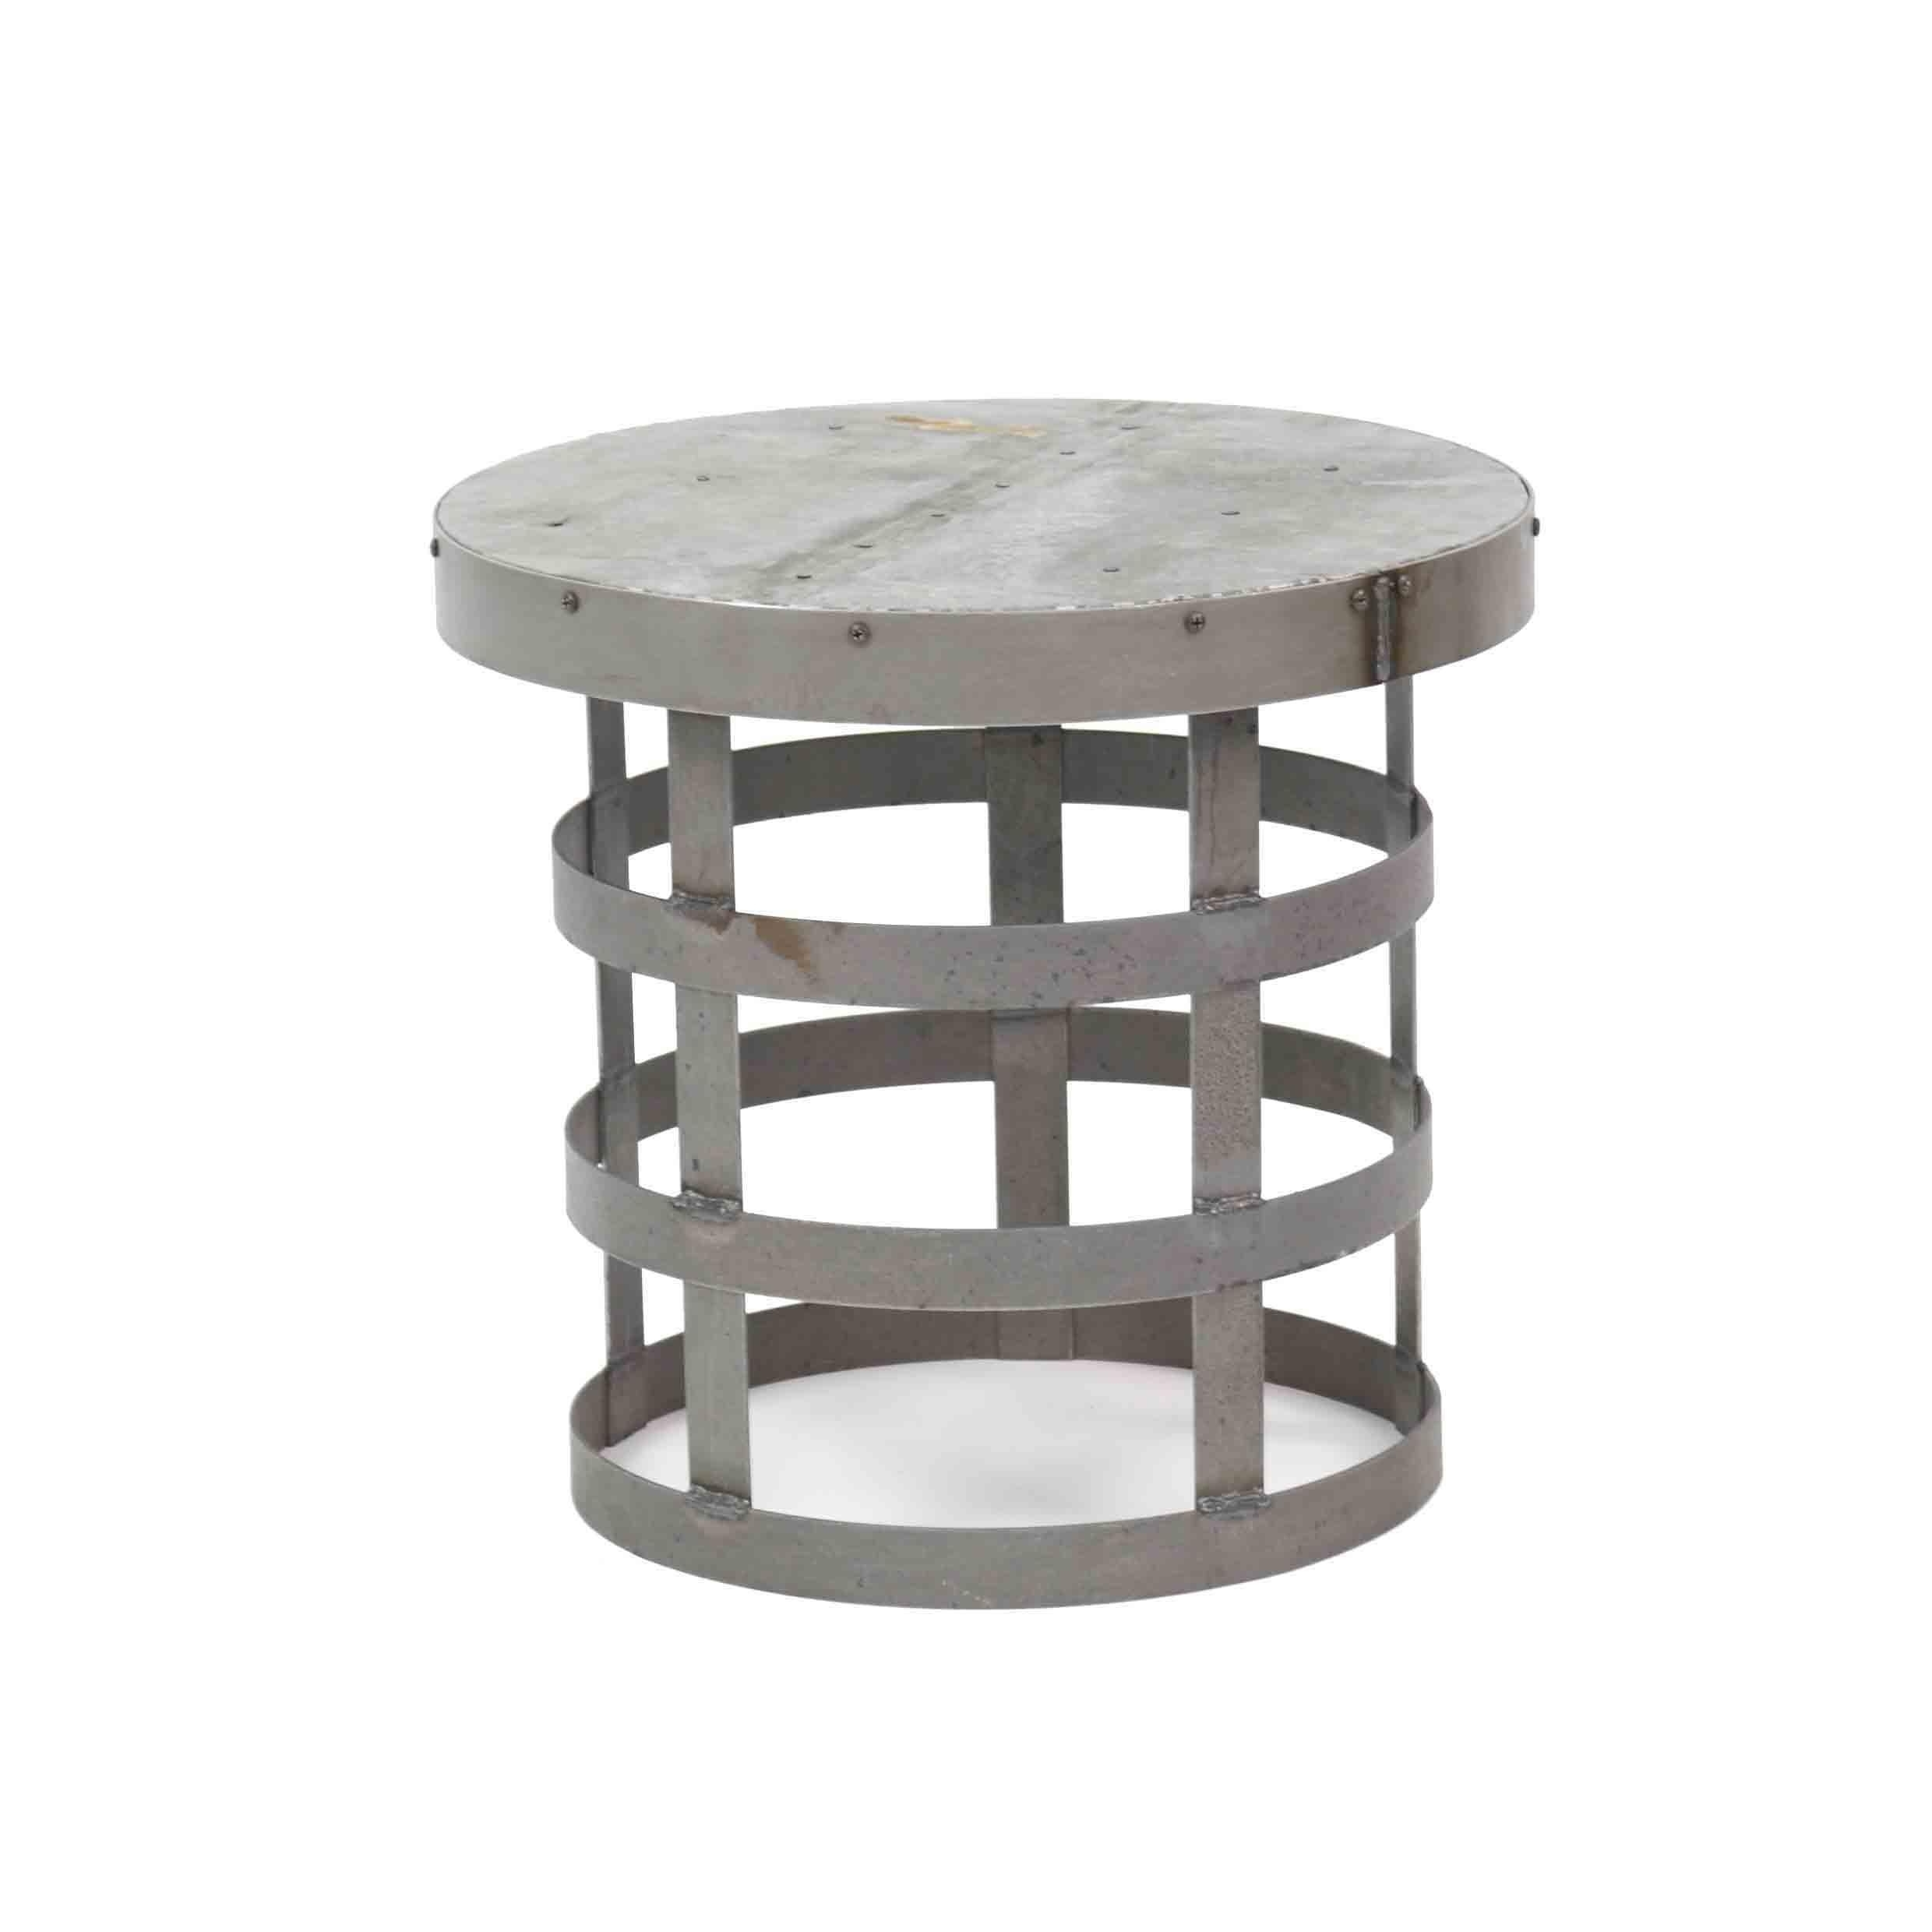 decoration round metal accent table with tables attractive small occasional side white next coffee black mirrored chest retro inspired furniture ikea kids bedroom storage brown